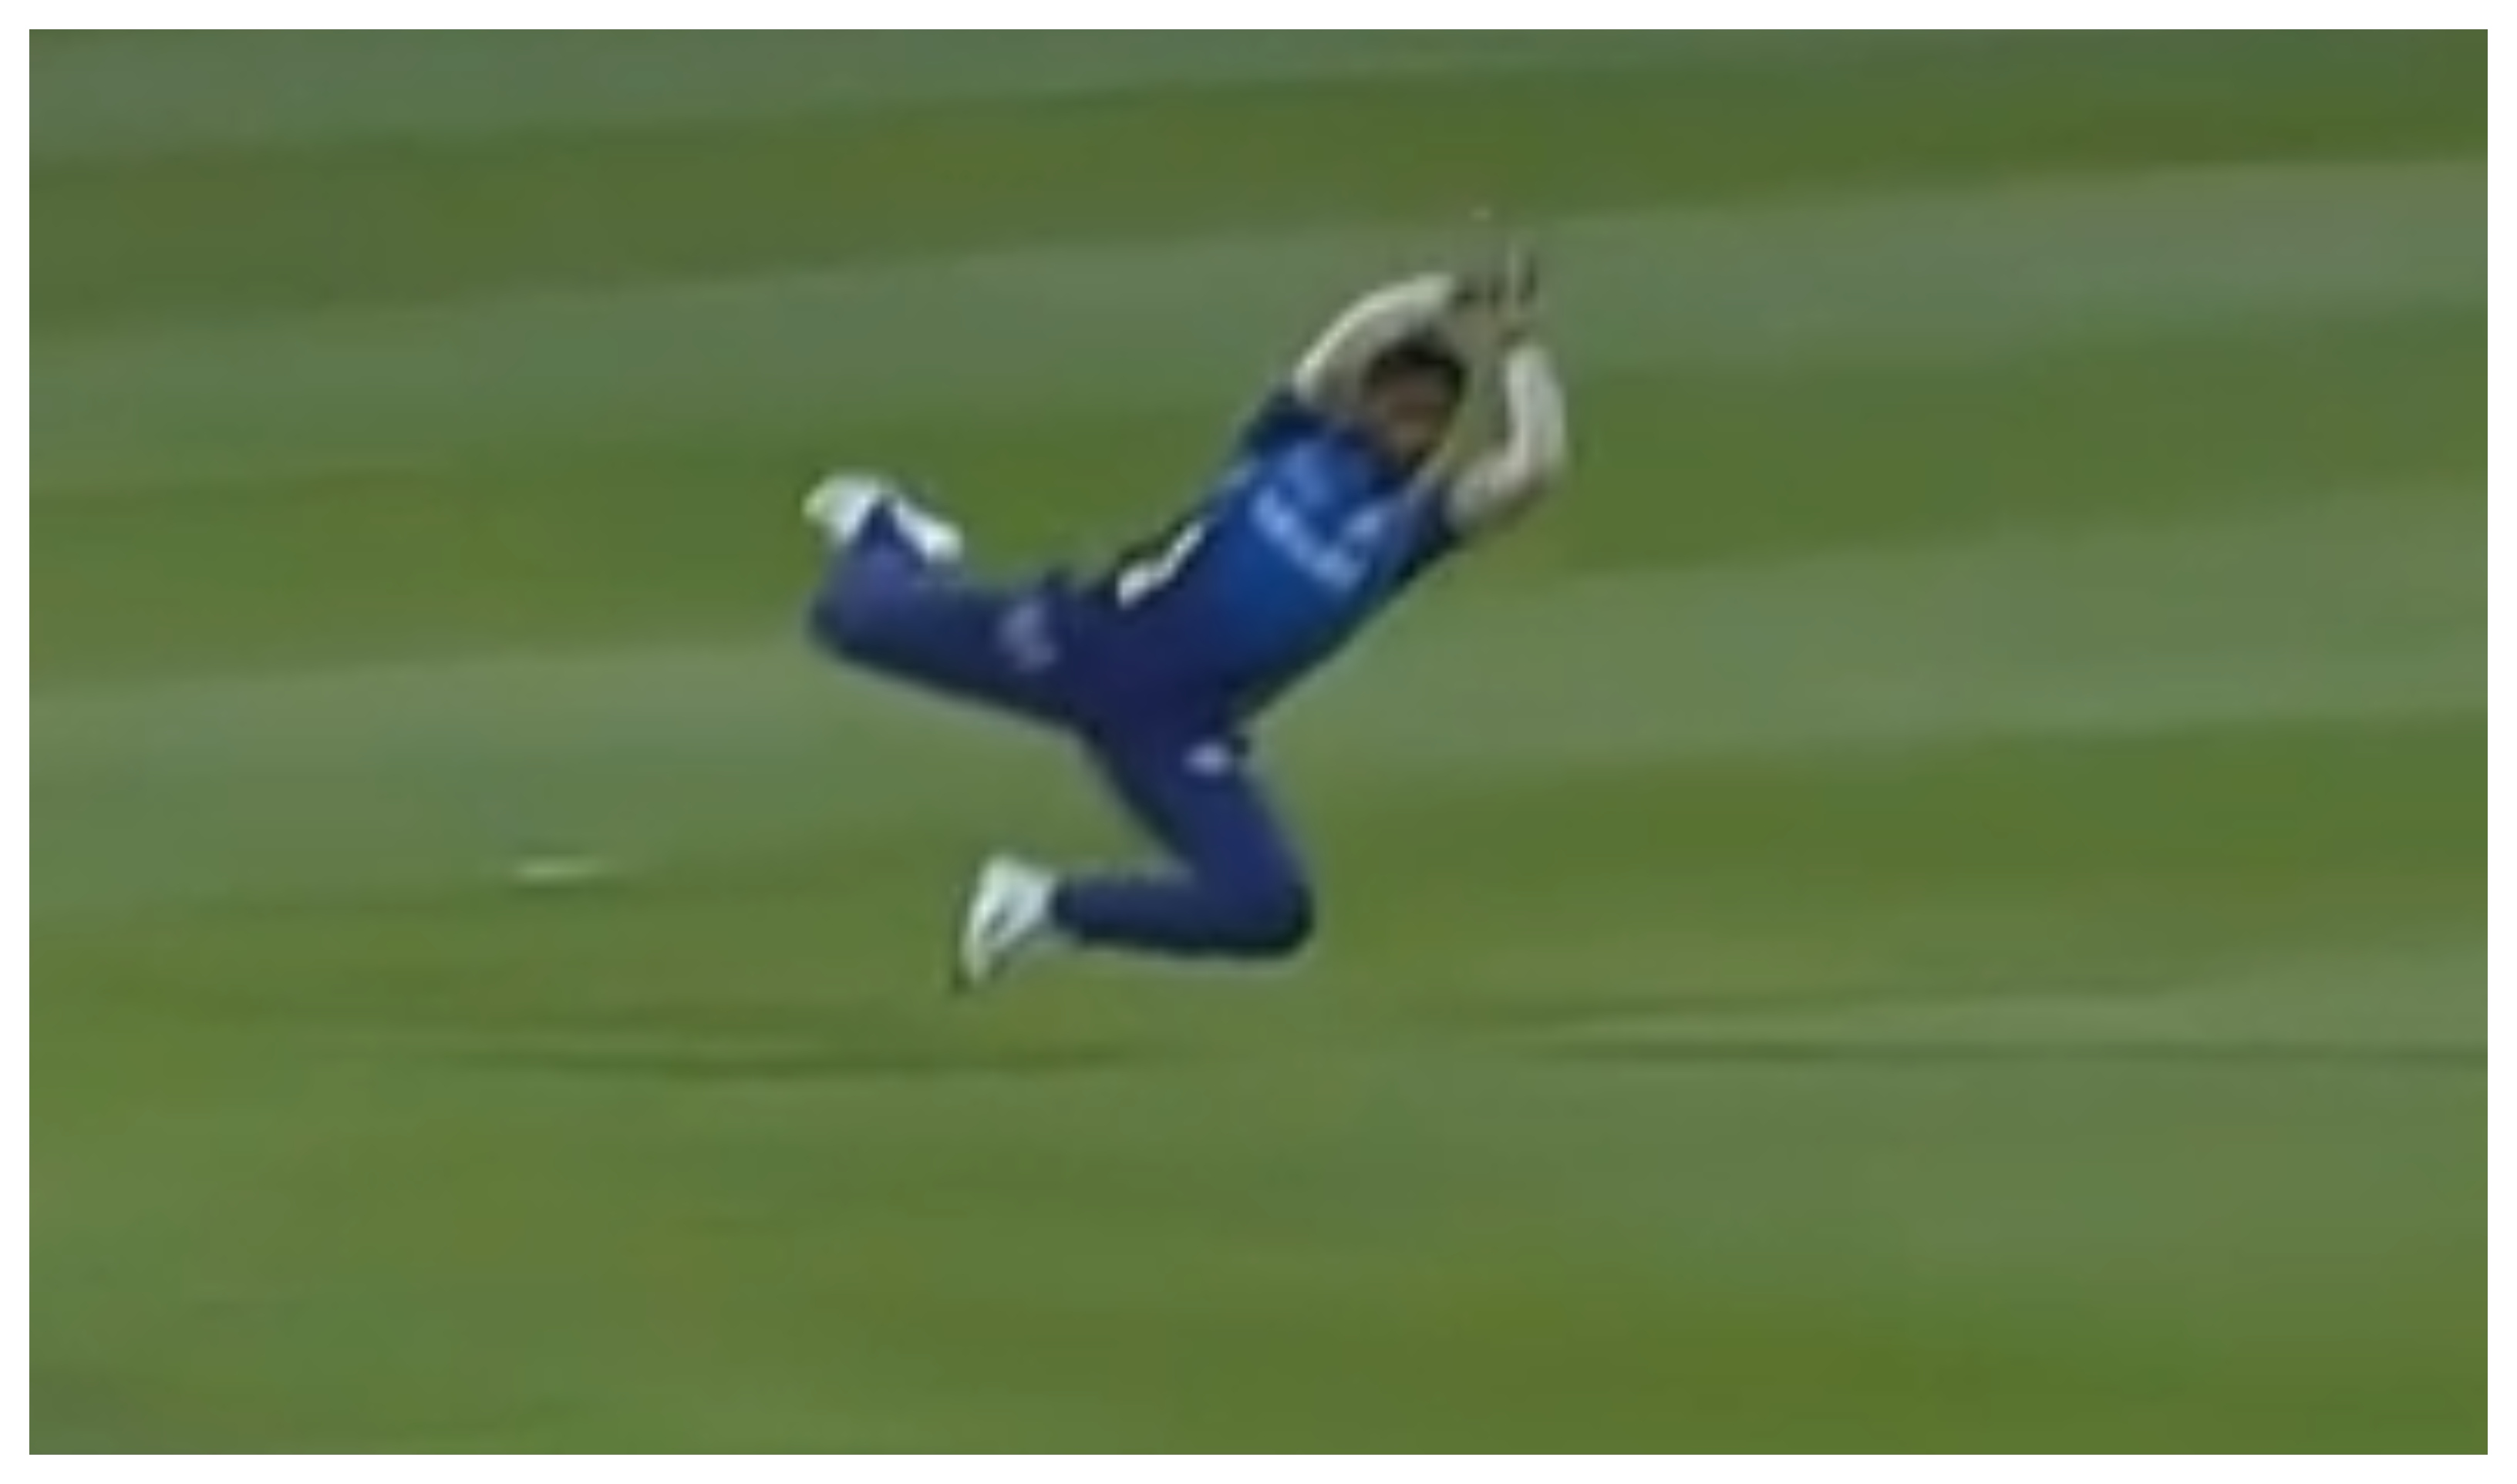 Suryakumar Yadav's outstanding catch | Screengrab